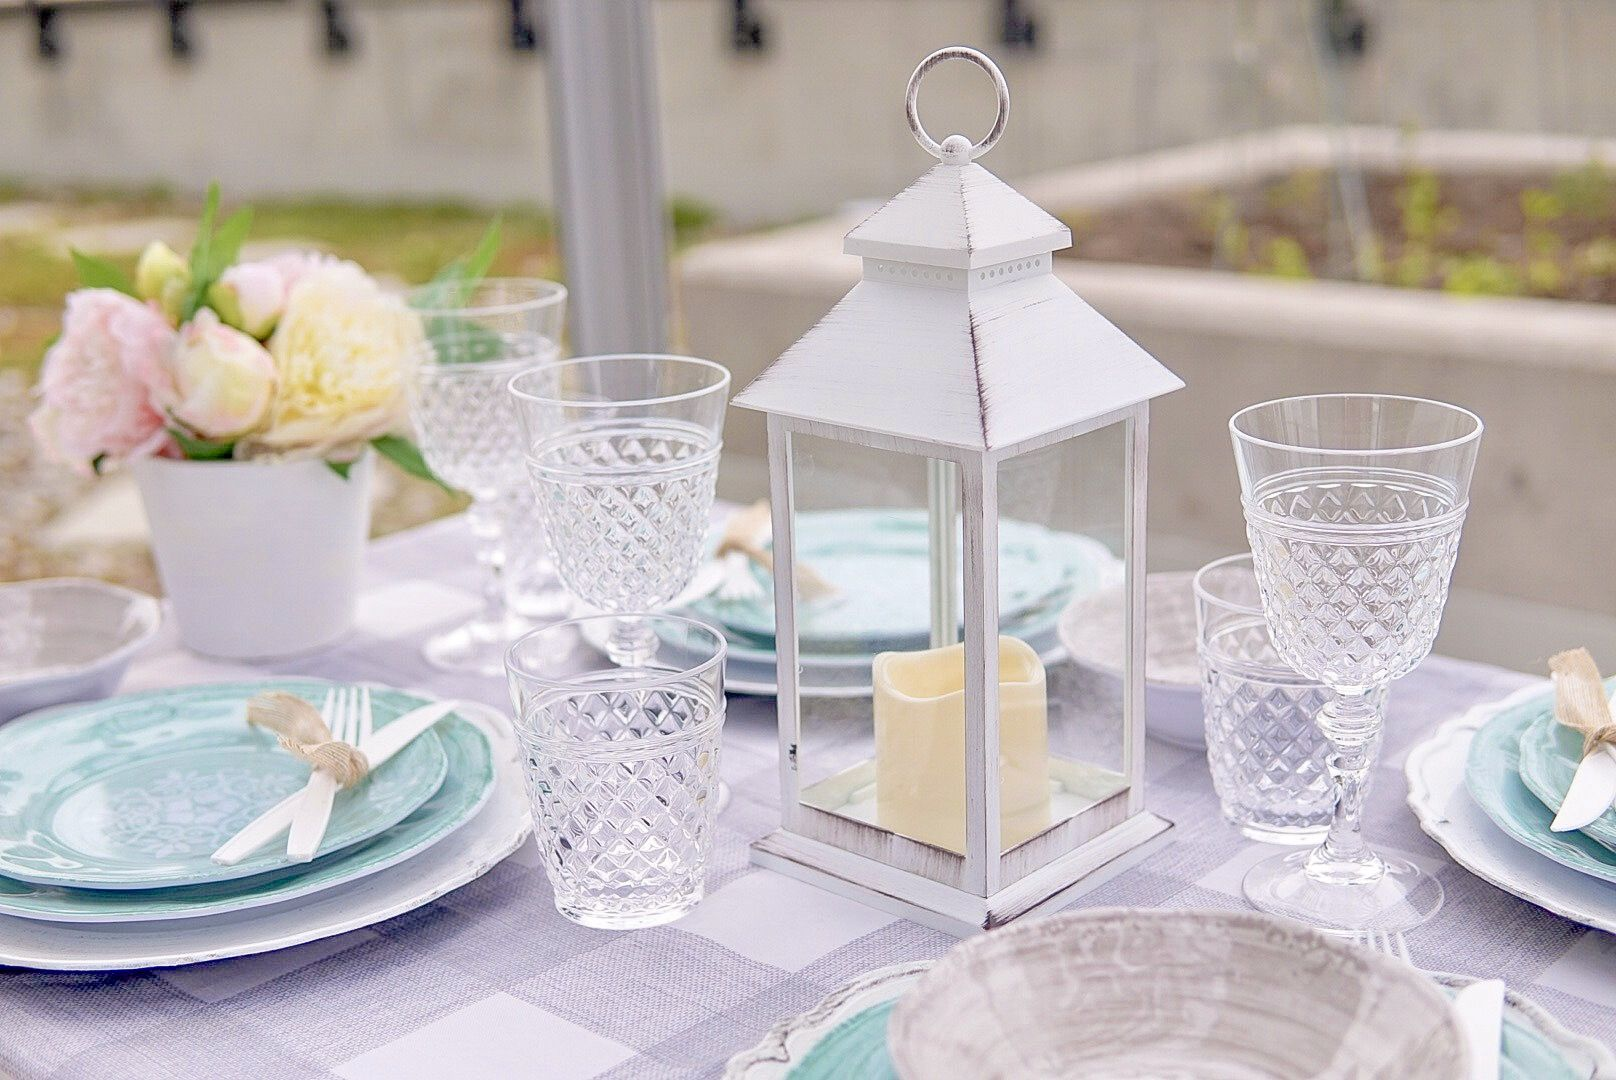 white metal lantern on a table with melamine dinnerware